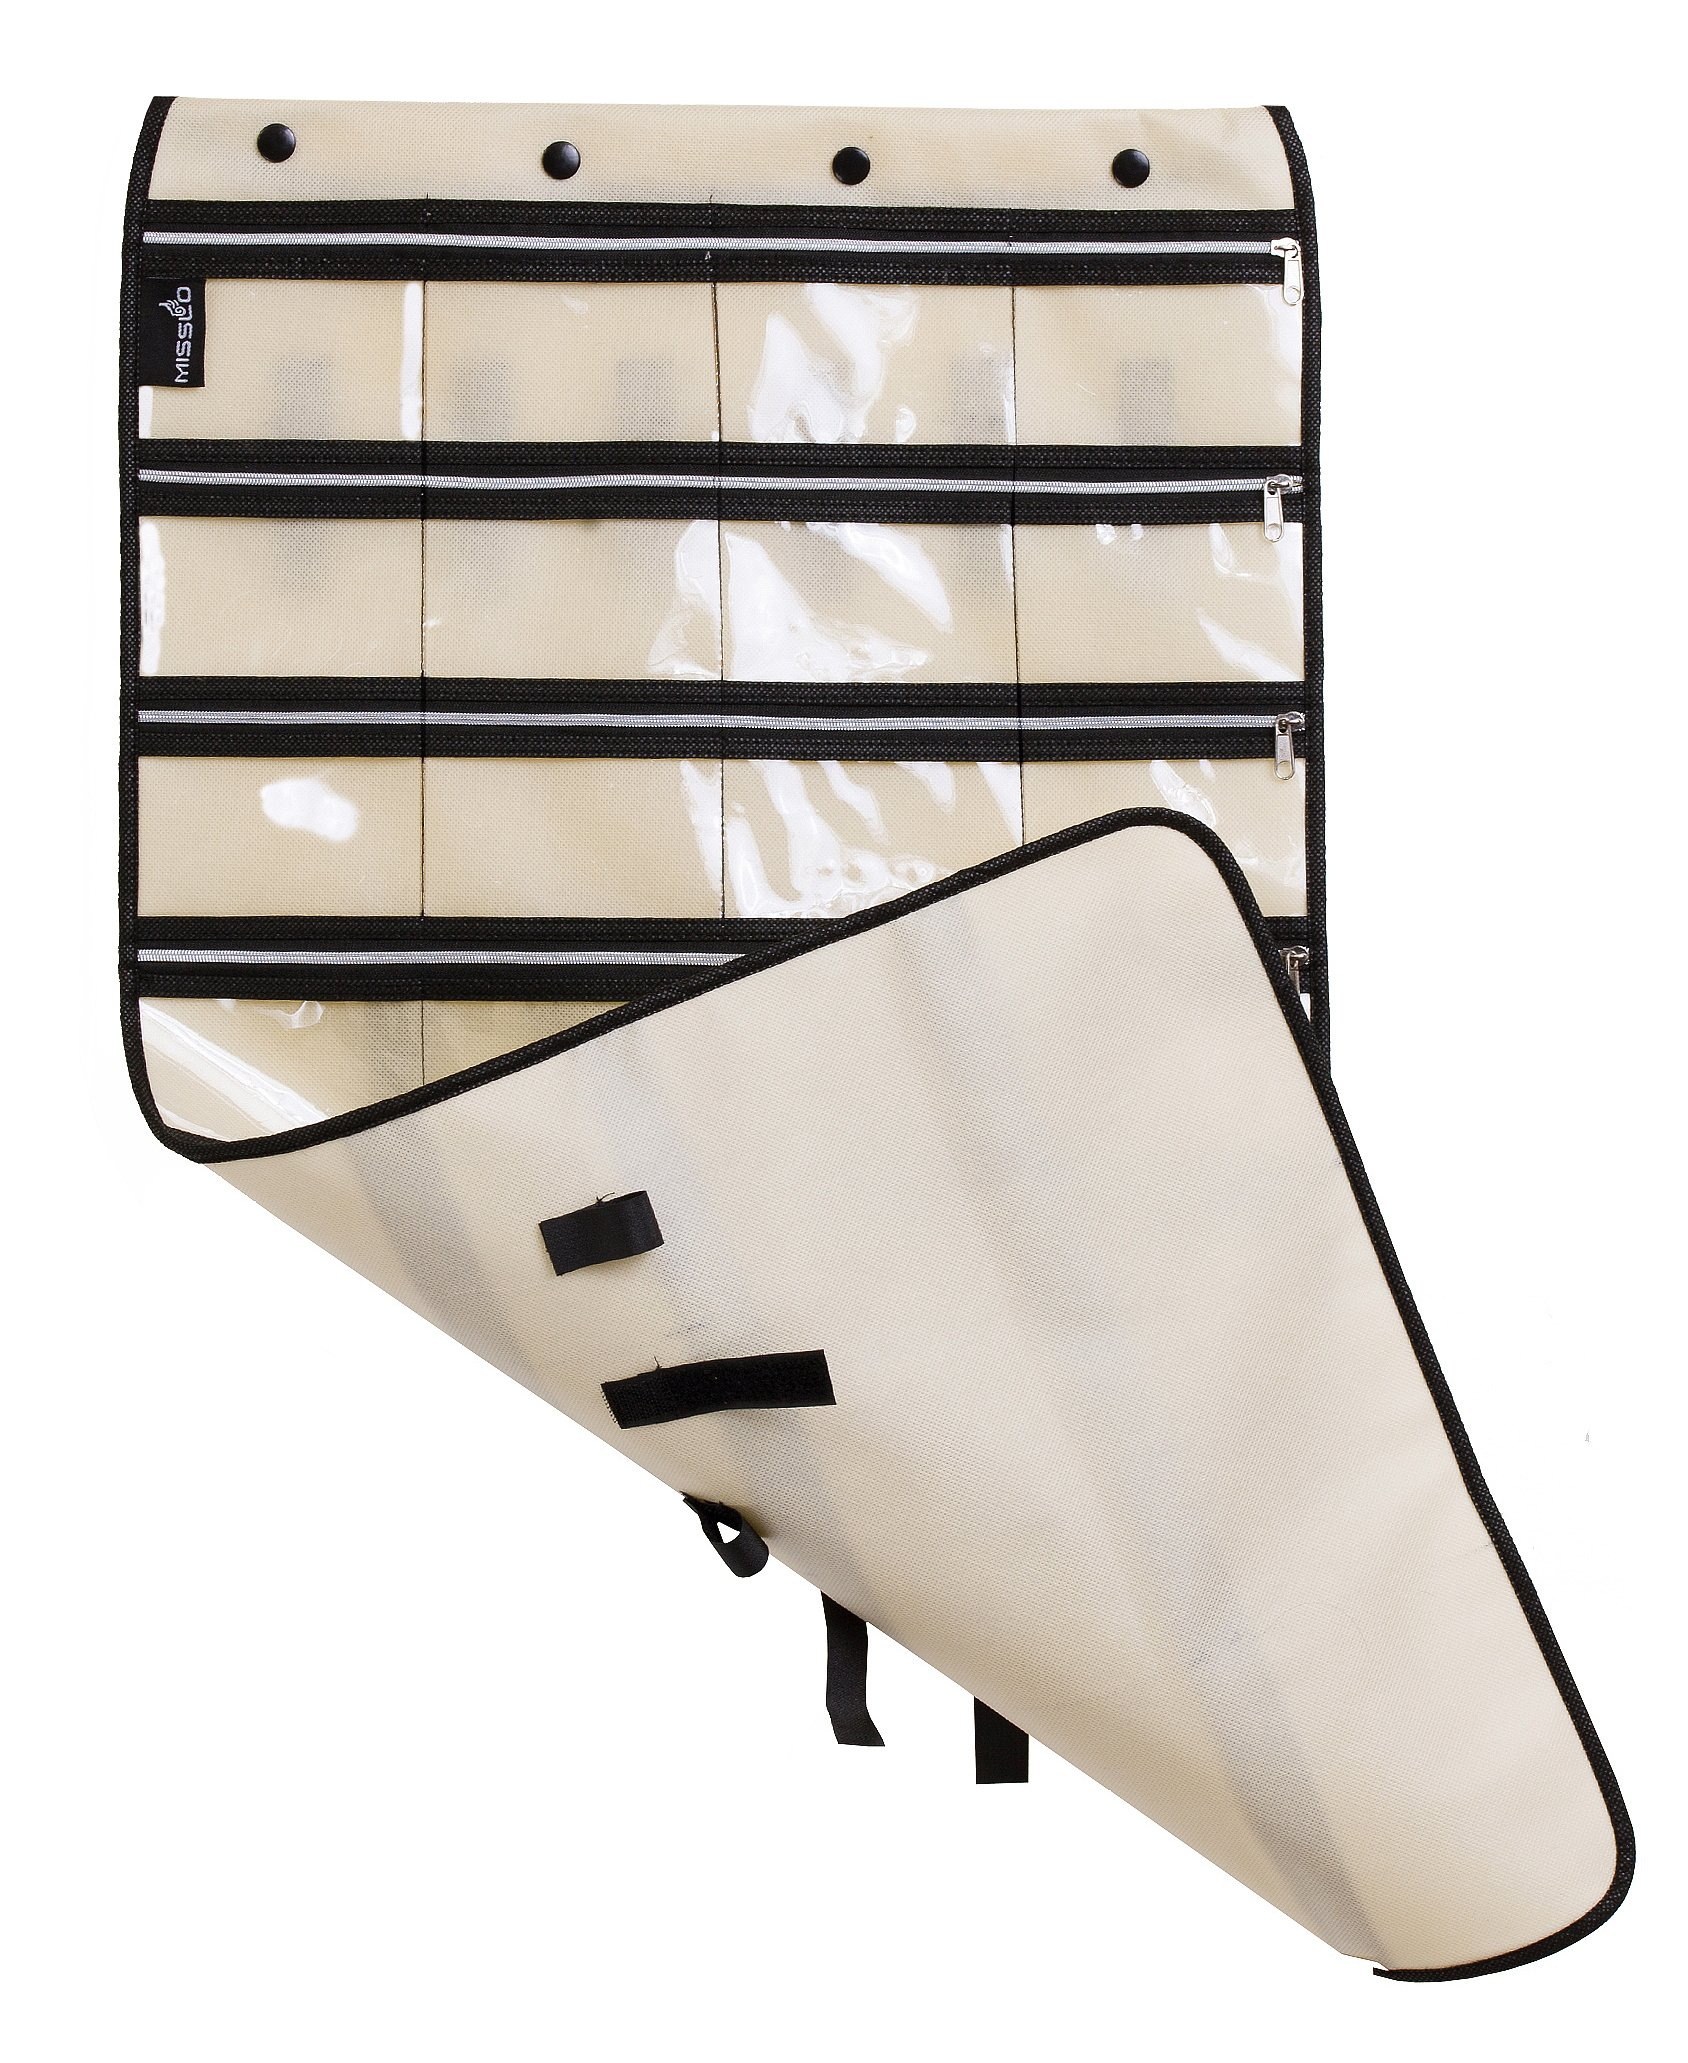 MISSLO Zippered Jewelry Organizer Hanging For Travel Home Storage 30 Zippered Pockets 17 Loops, Beige